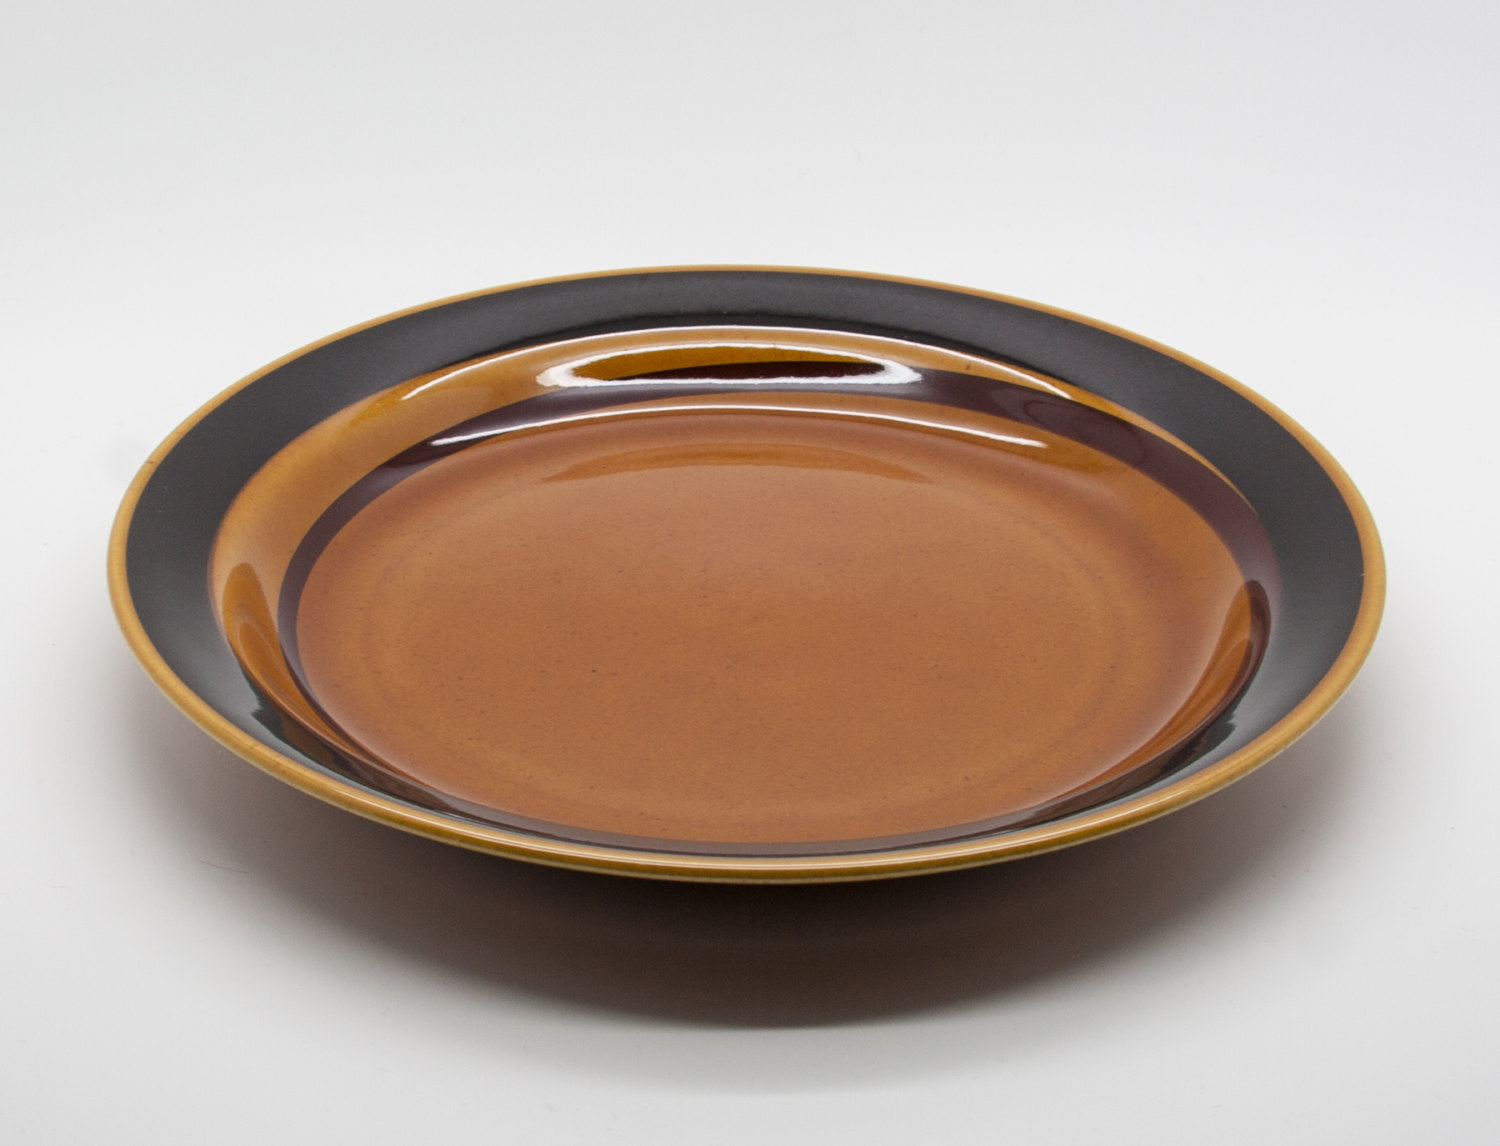 Rörstrand CARL HARRY STÅLHANE Tableware TUNA Dinner Plate - Mollaris.com